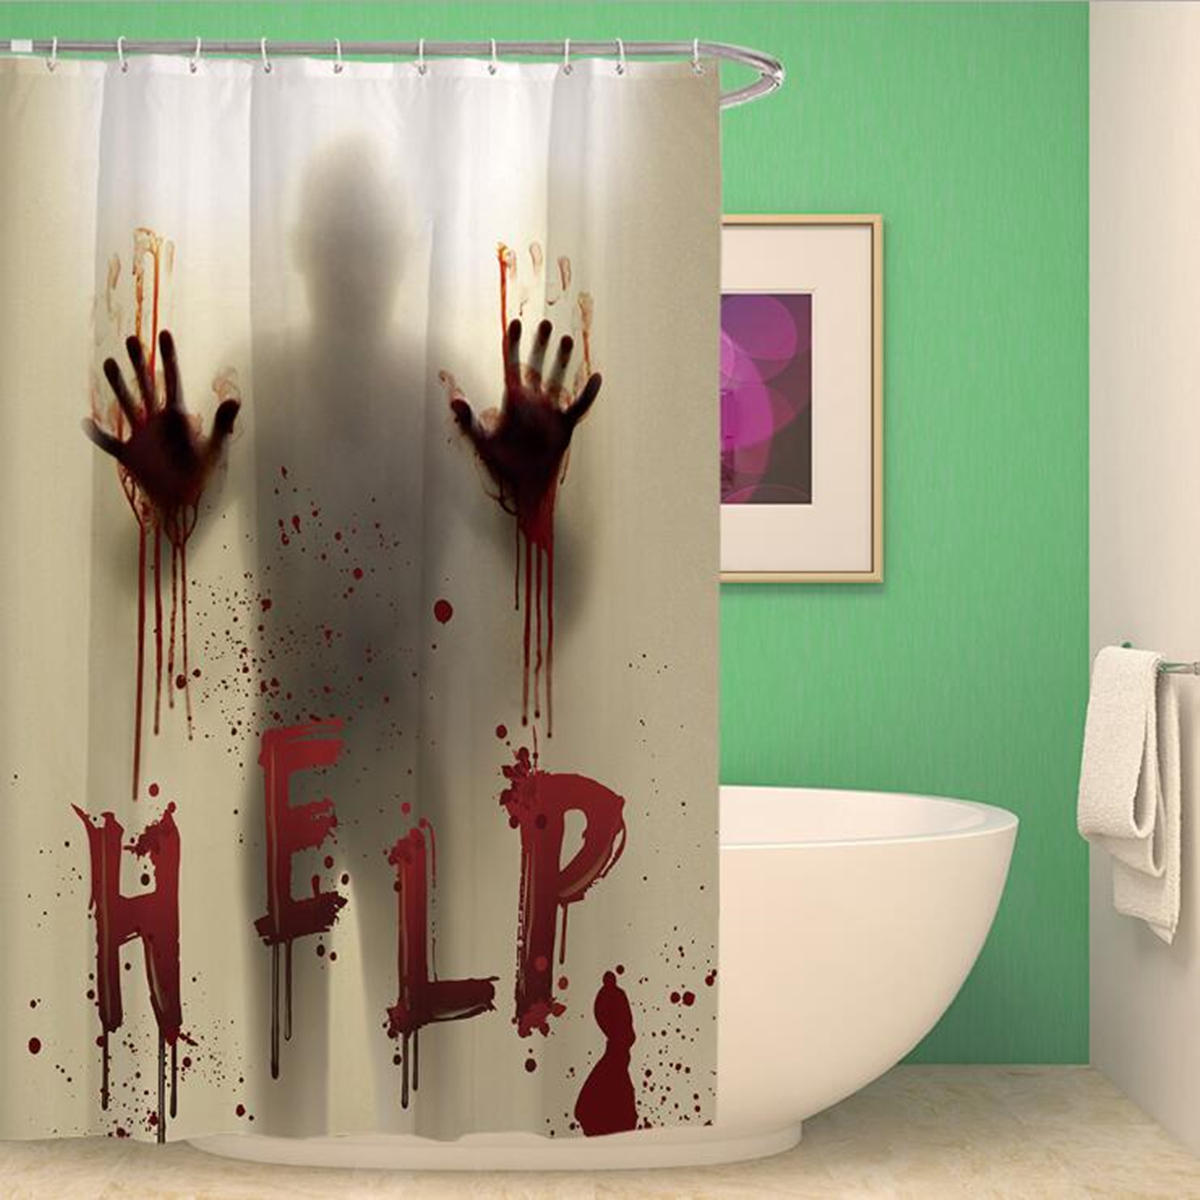 Bathroom Shower Curtain Halloween Horror Bloody Hands Helps Waterproof Shower Curtains Bathroom Decor